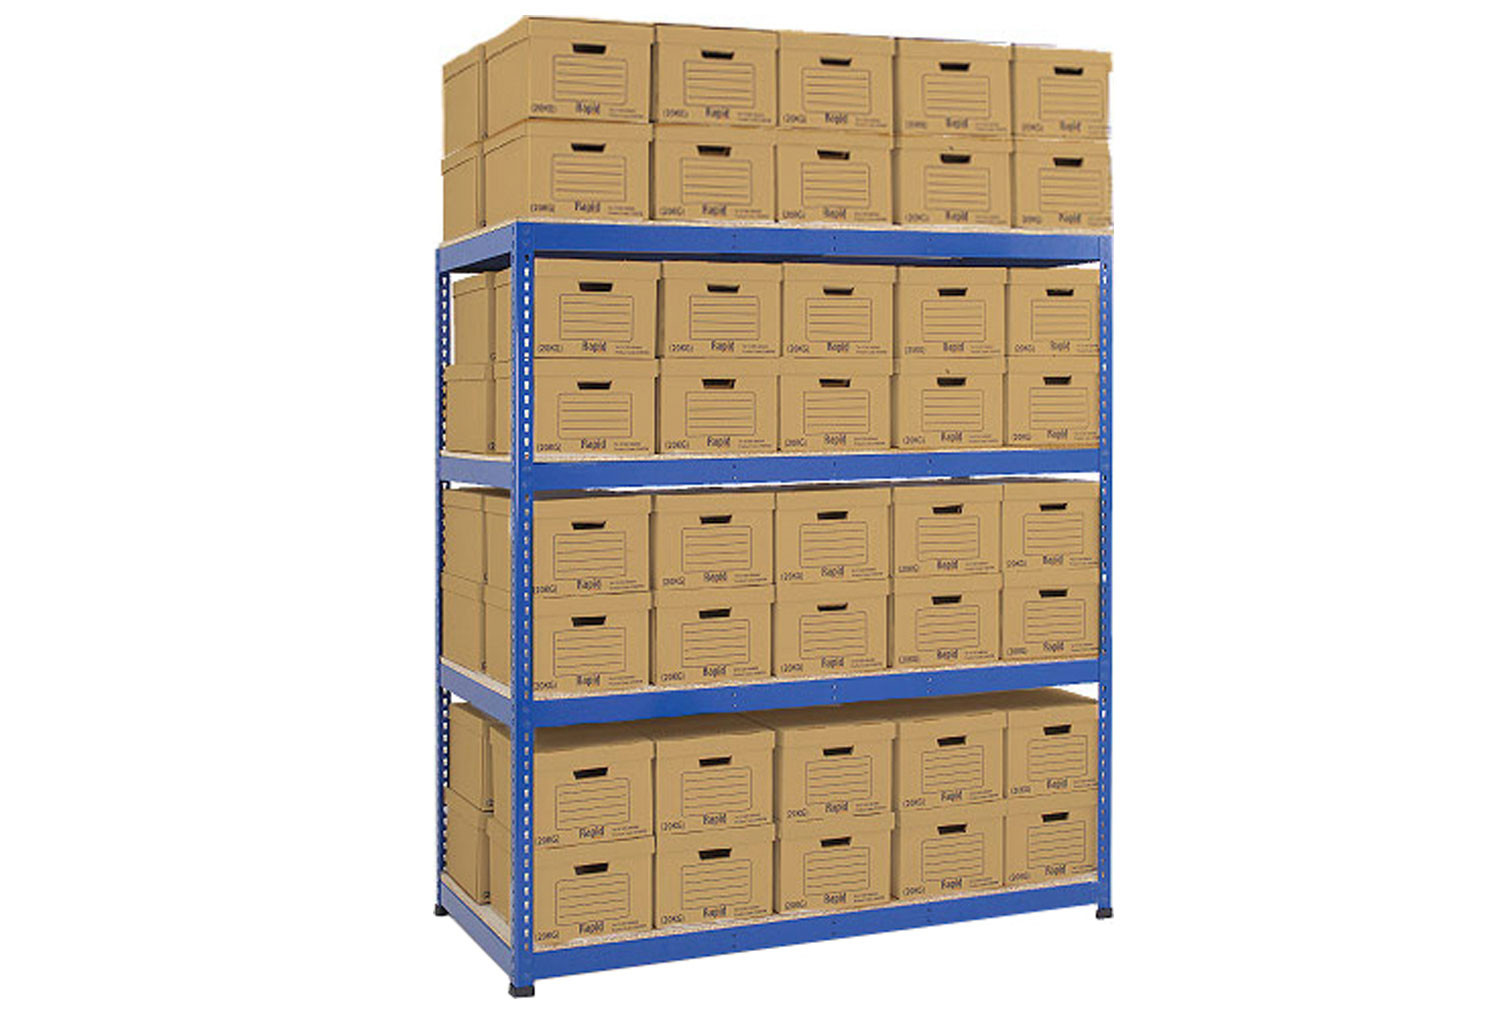 Rapid 1 double sided archive storage unit with 80 boxes